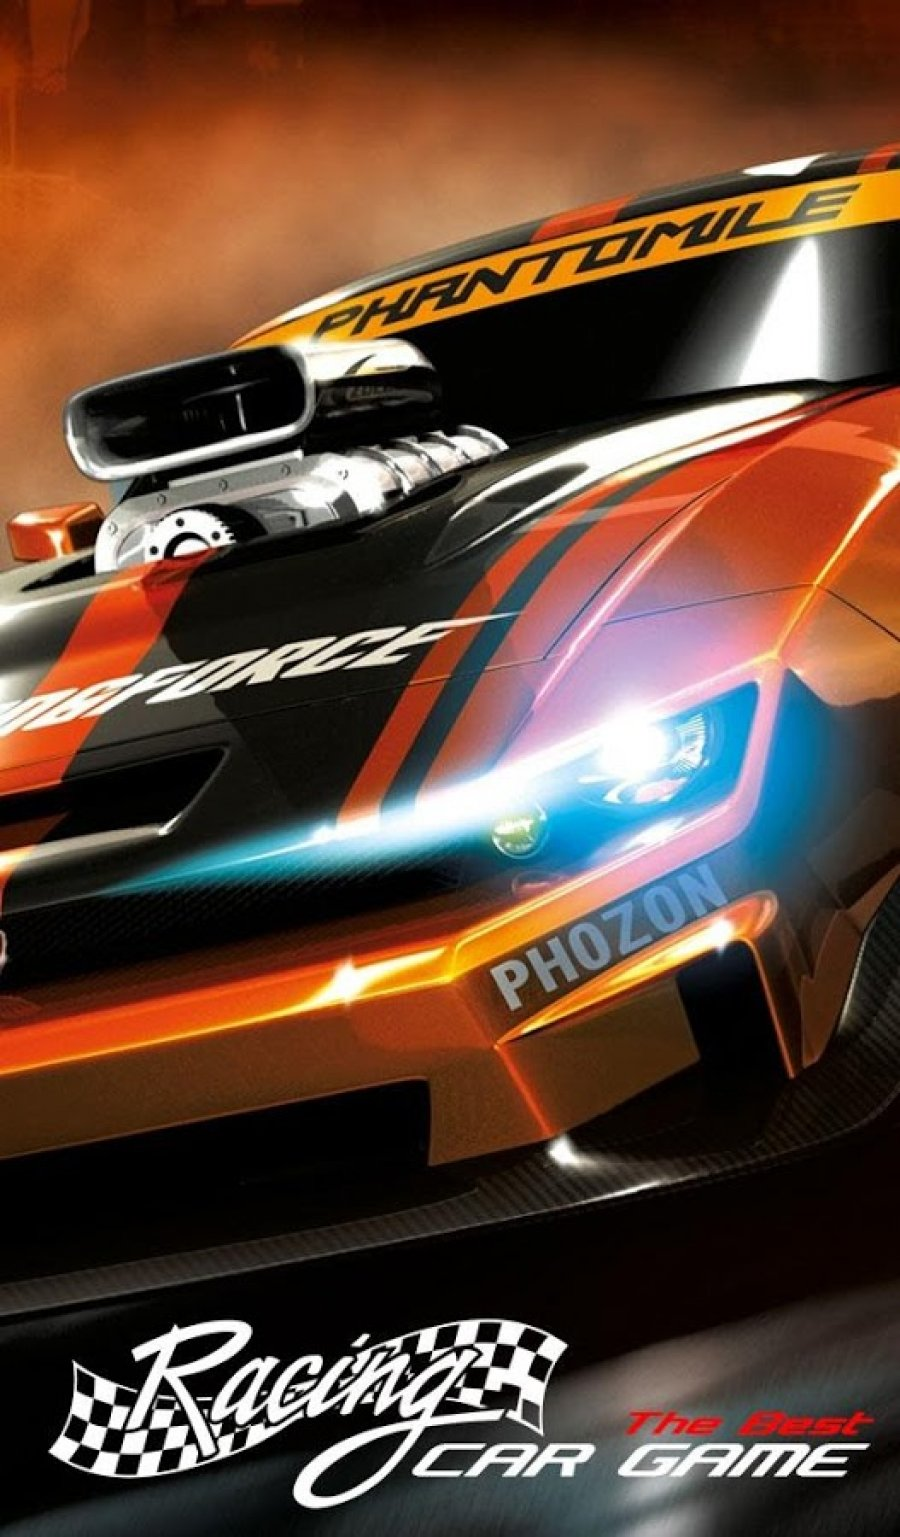 10 best car games for Android (Updated ) - Android Authority